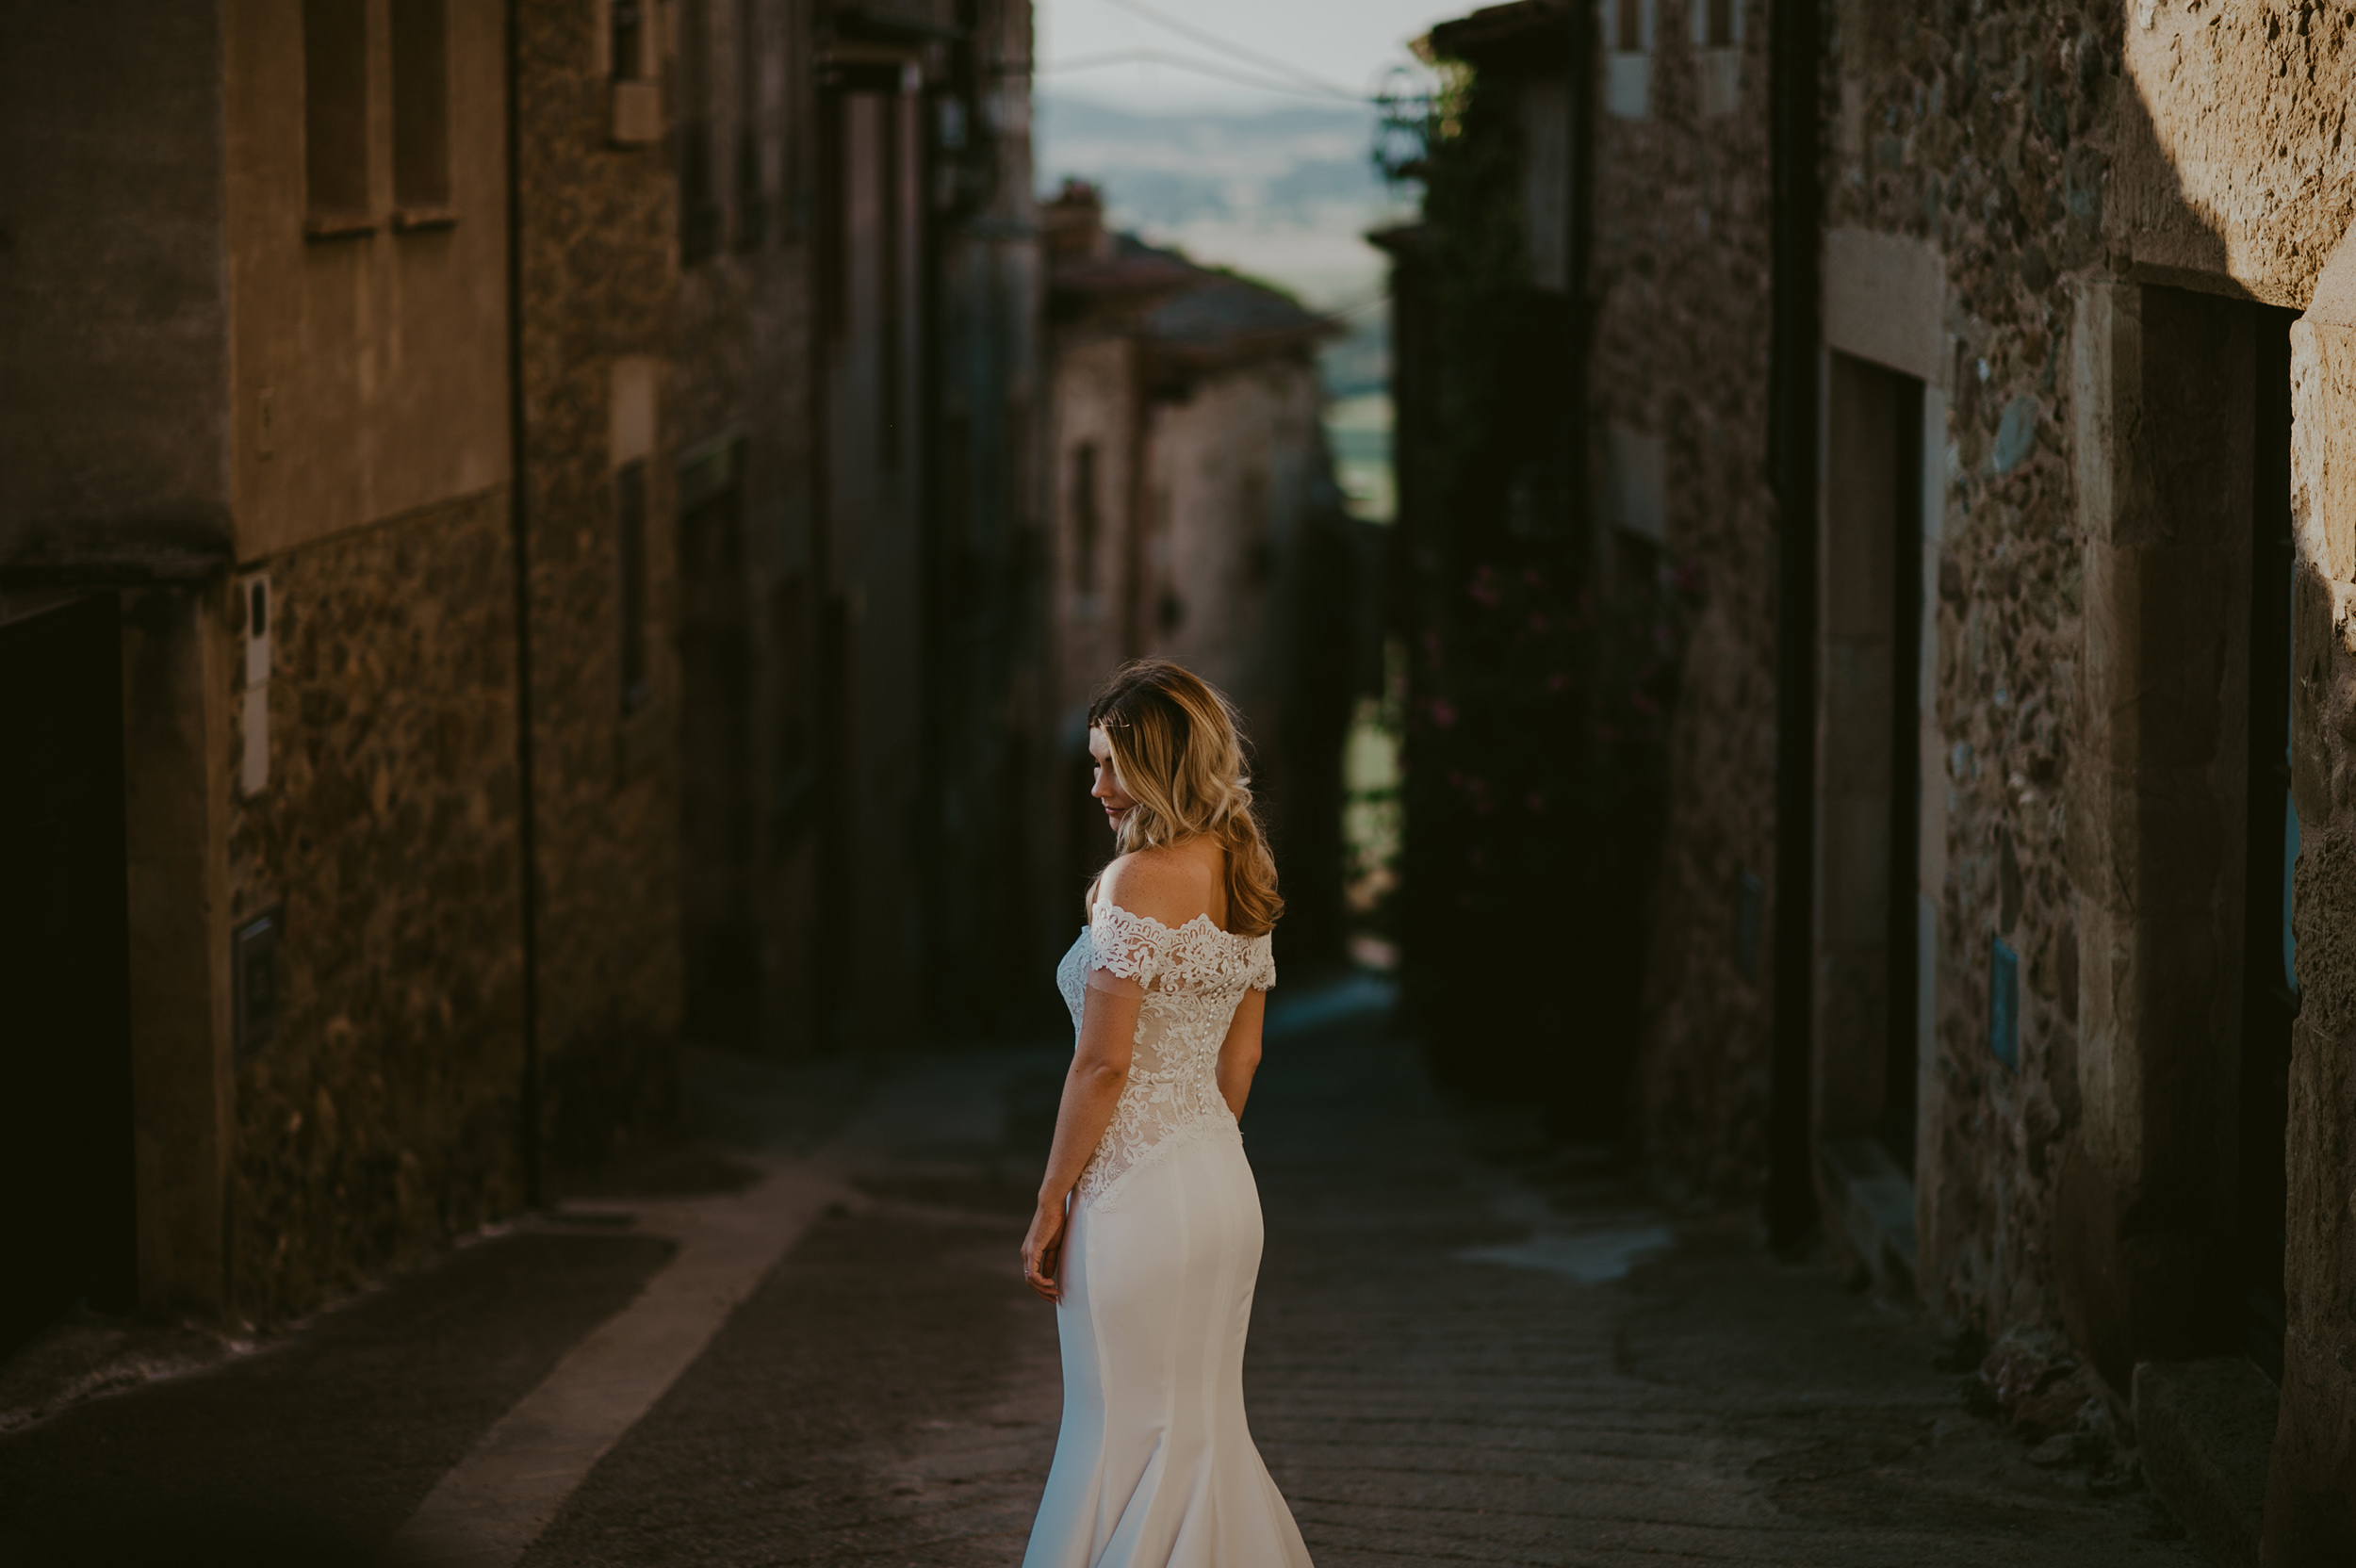 Girona wedding photographer